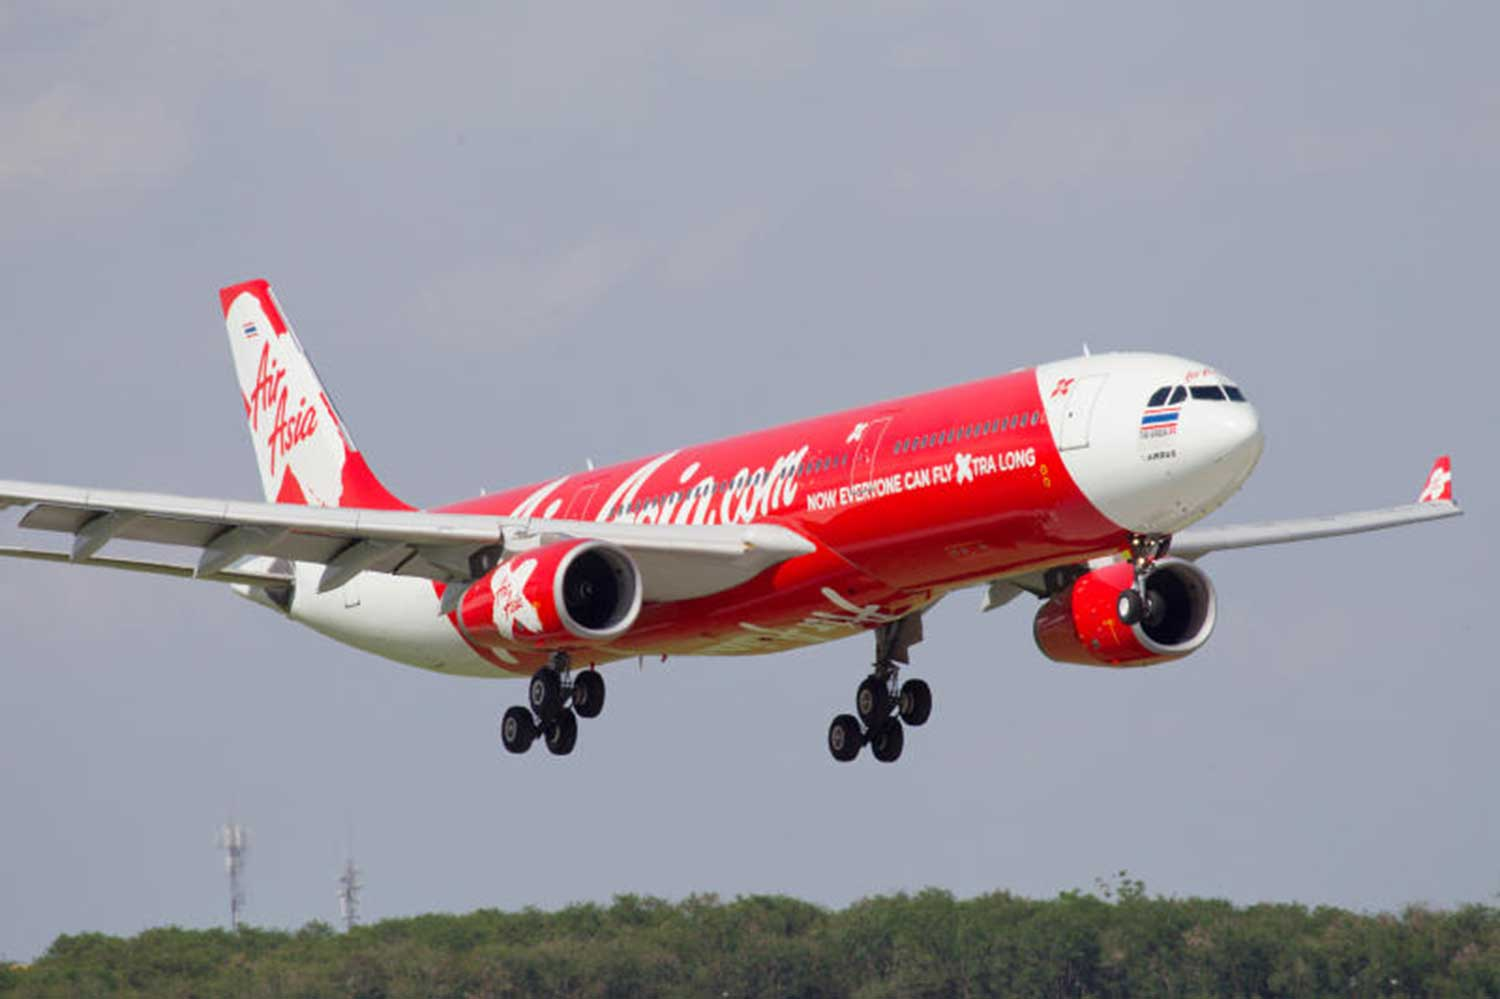 Thai AirAsia suspends all international flights from Sunday to April 25 in the wake of the coronavirus outbreak. (AirAsia photo)